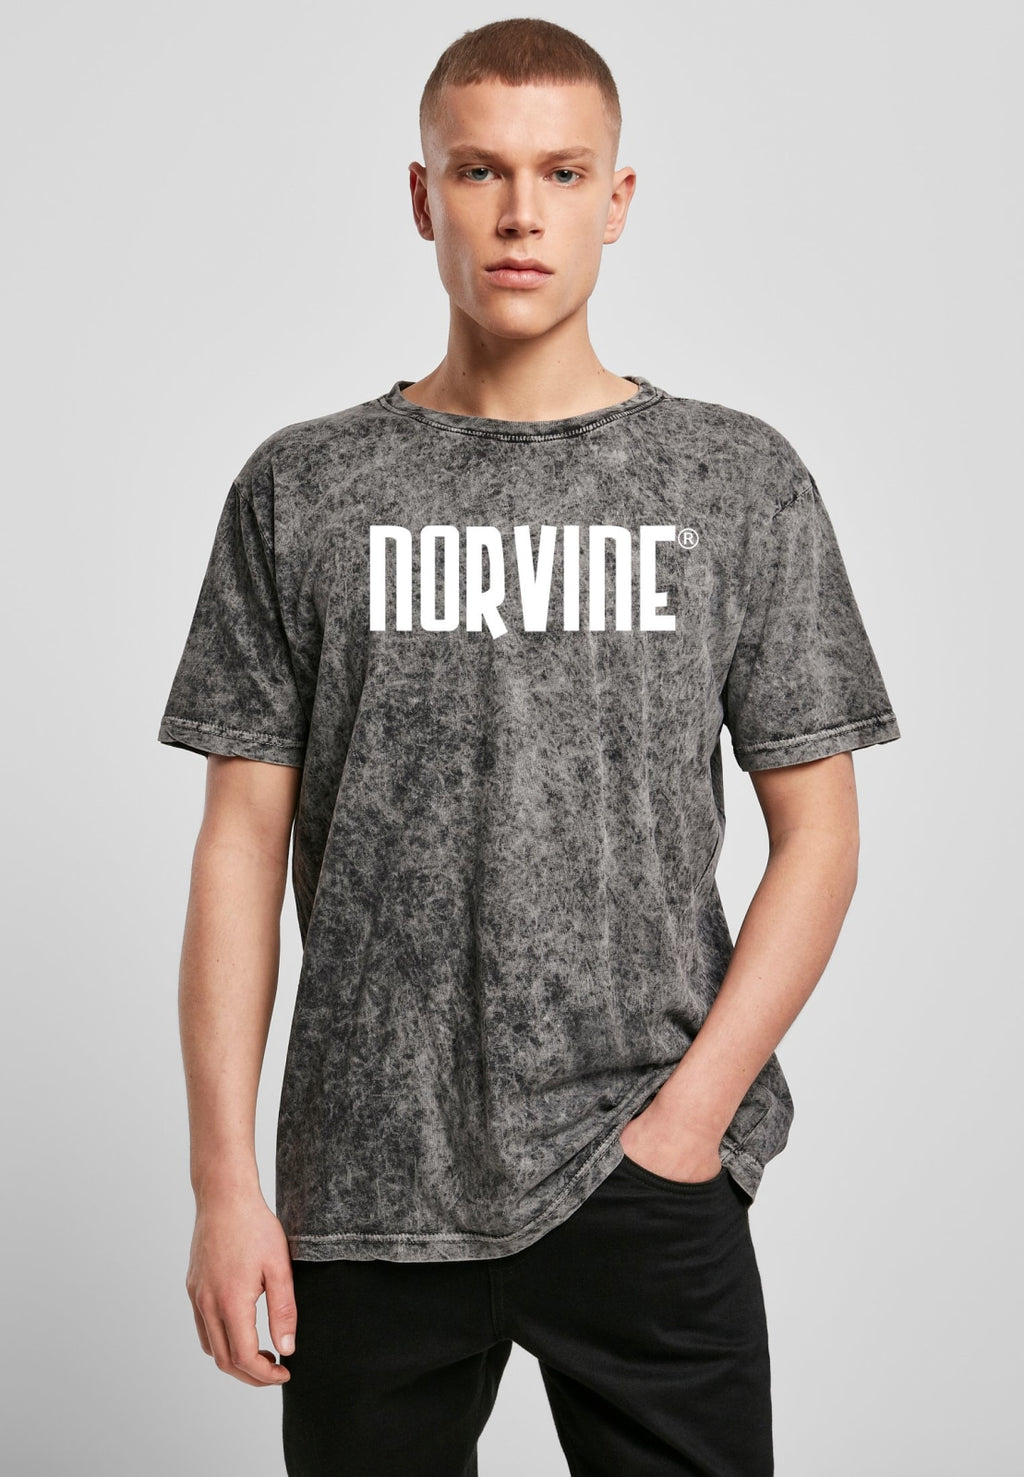 Norvine Logo Acid Washed Tee Dark Grey / s T-shirt Norvine